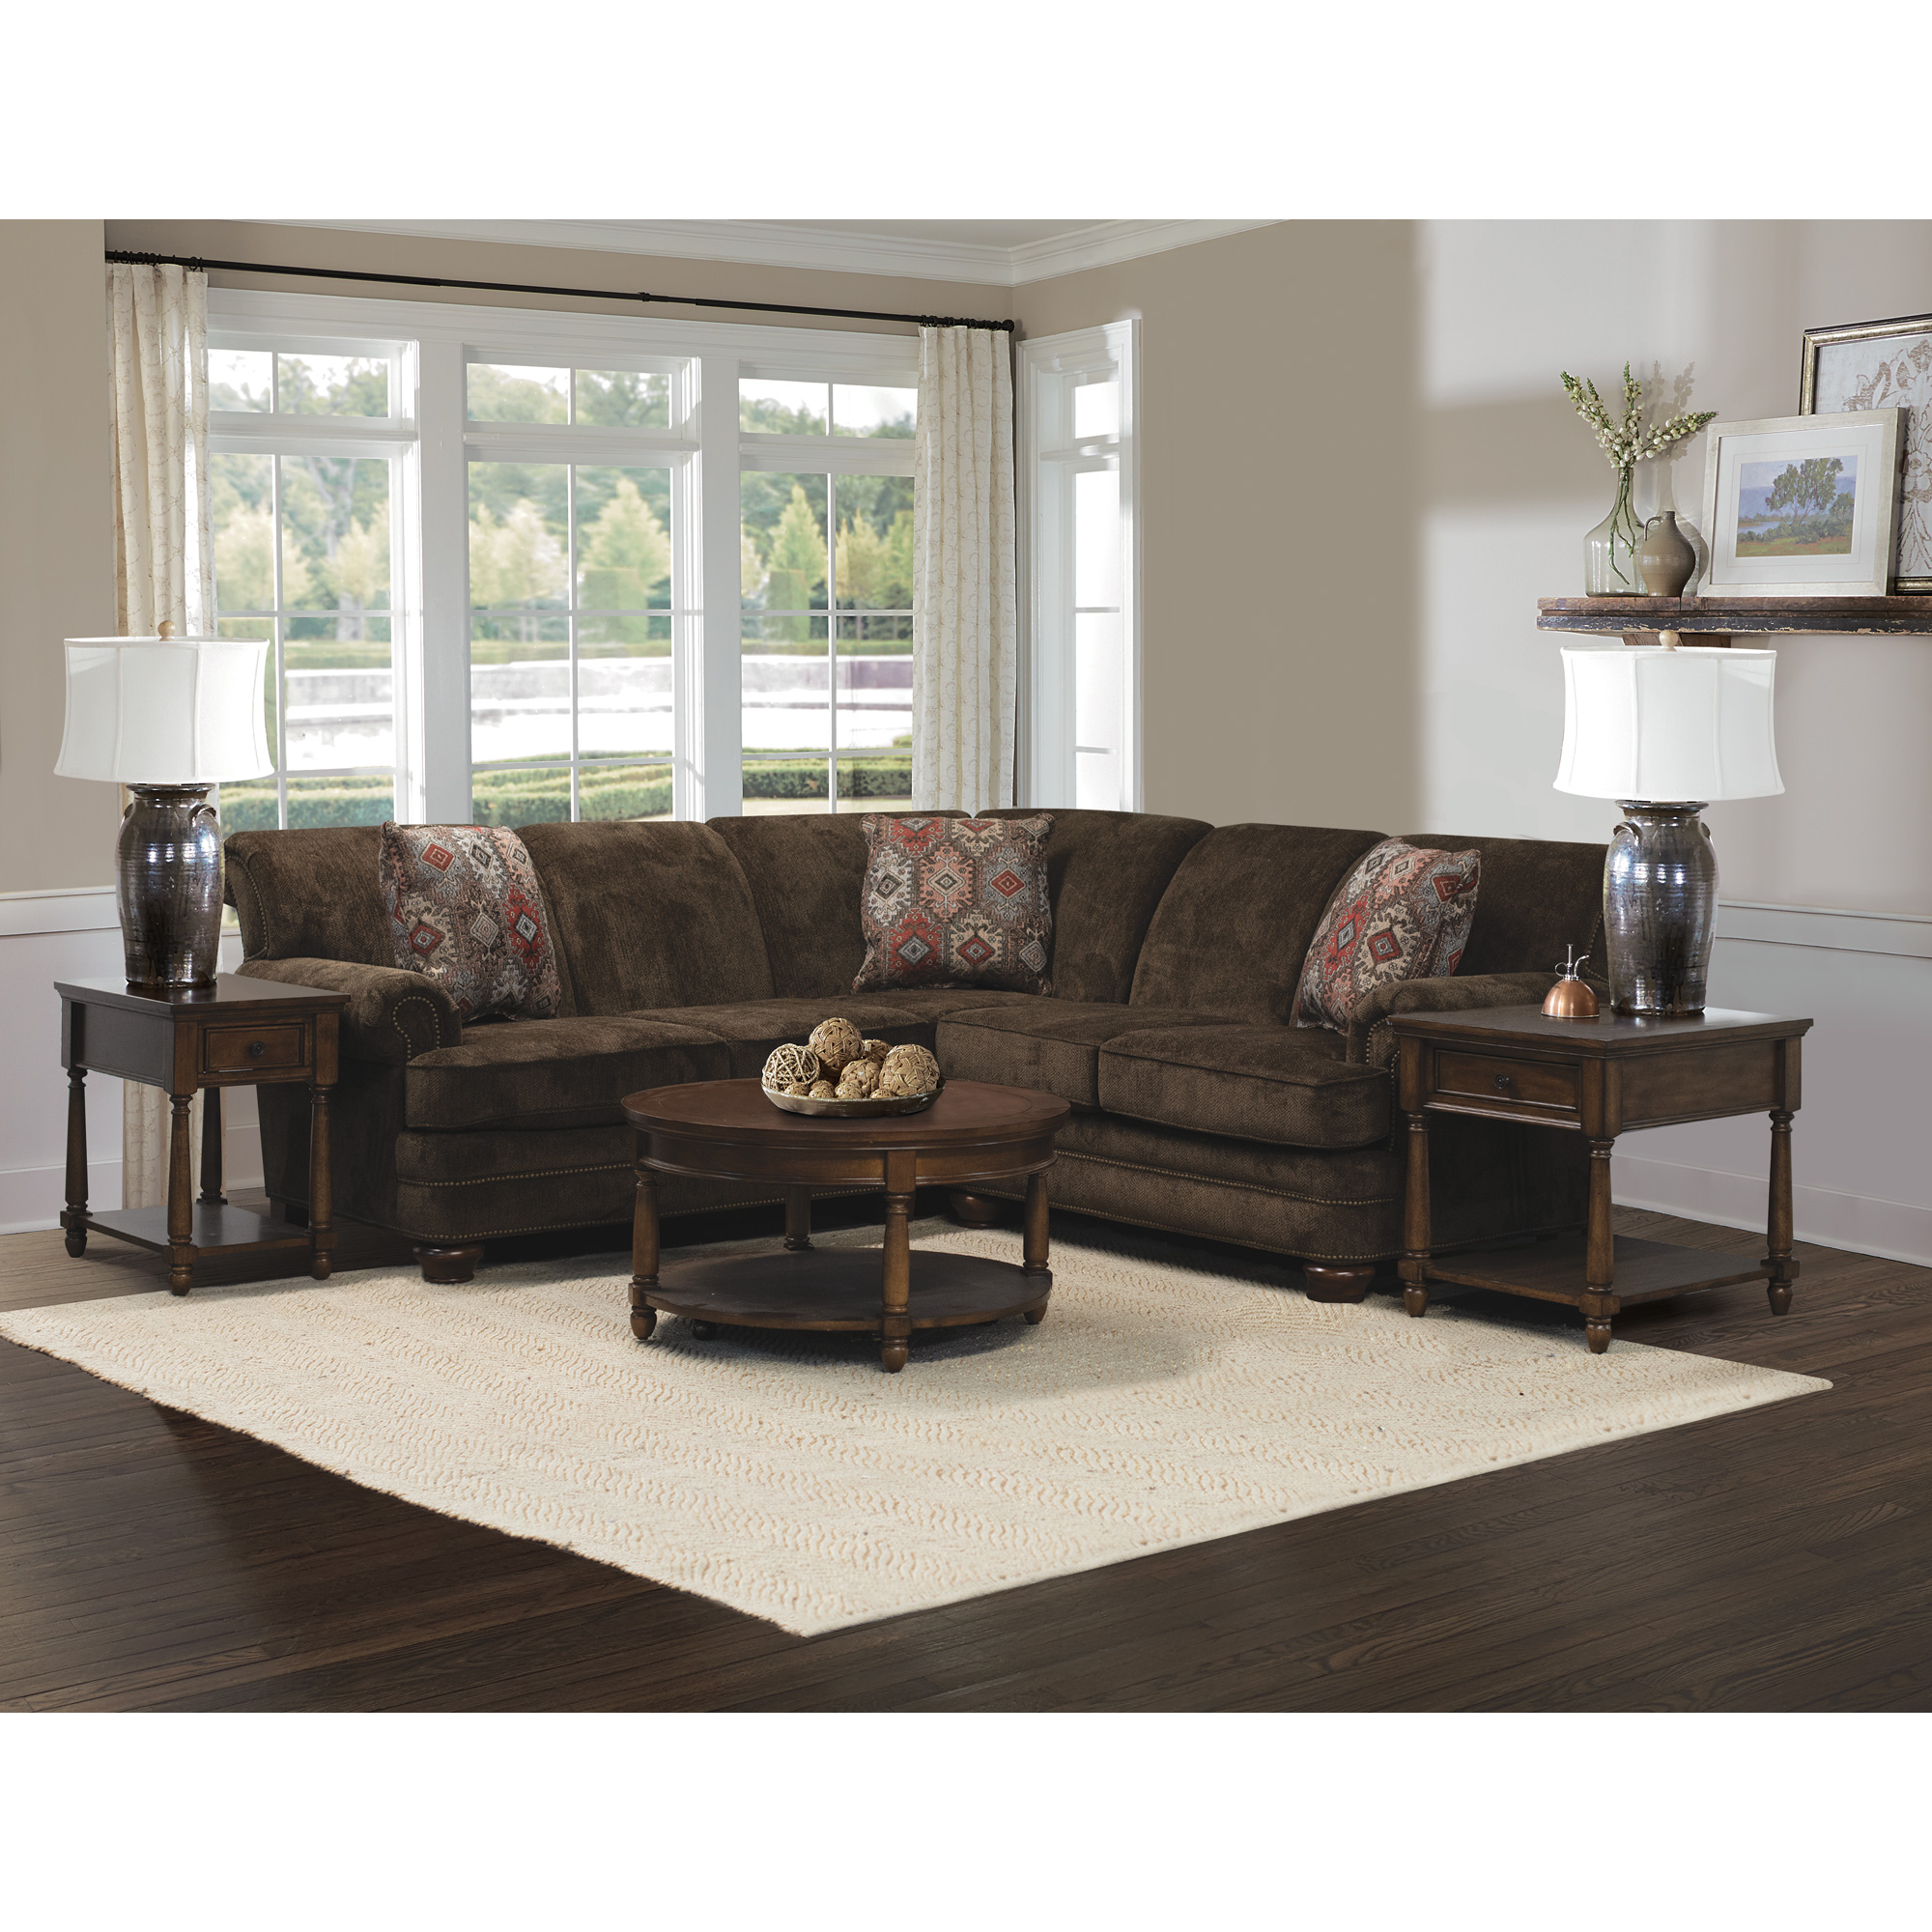 Dimensions By Englanddimensions By England York Granite 3 Piece Sectional Sofa Dailymail